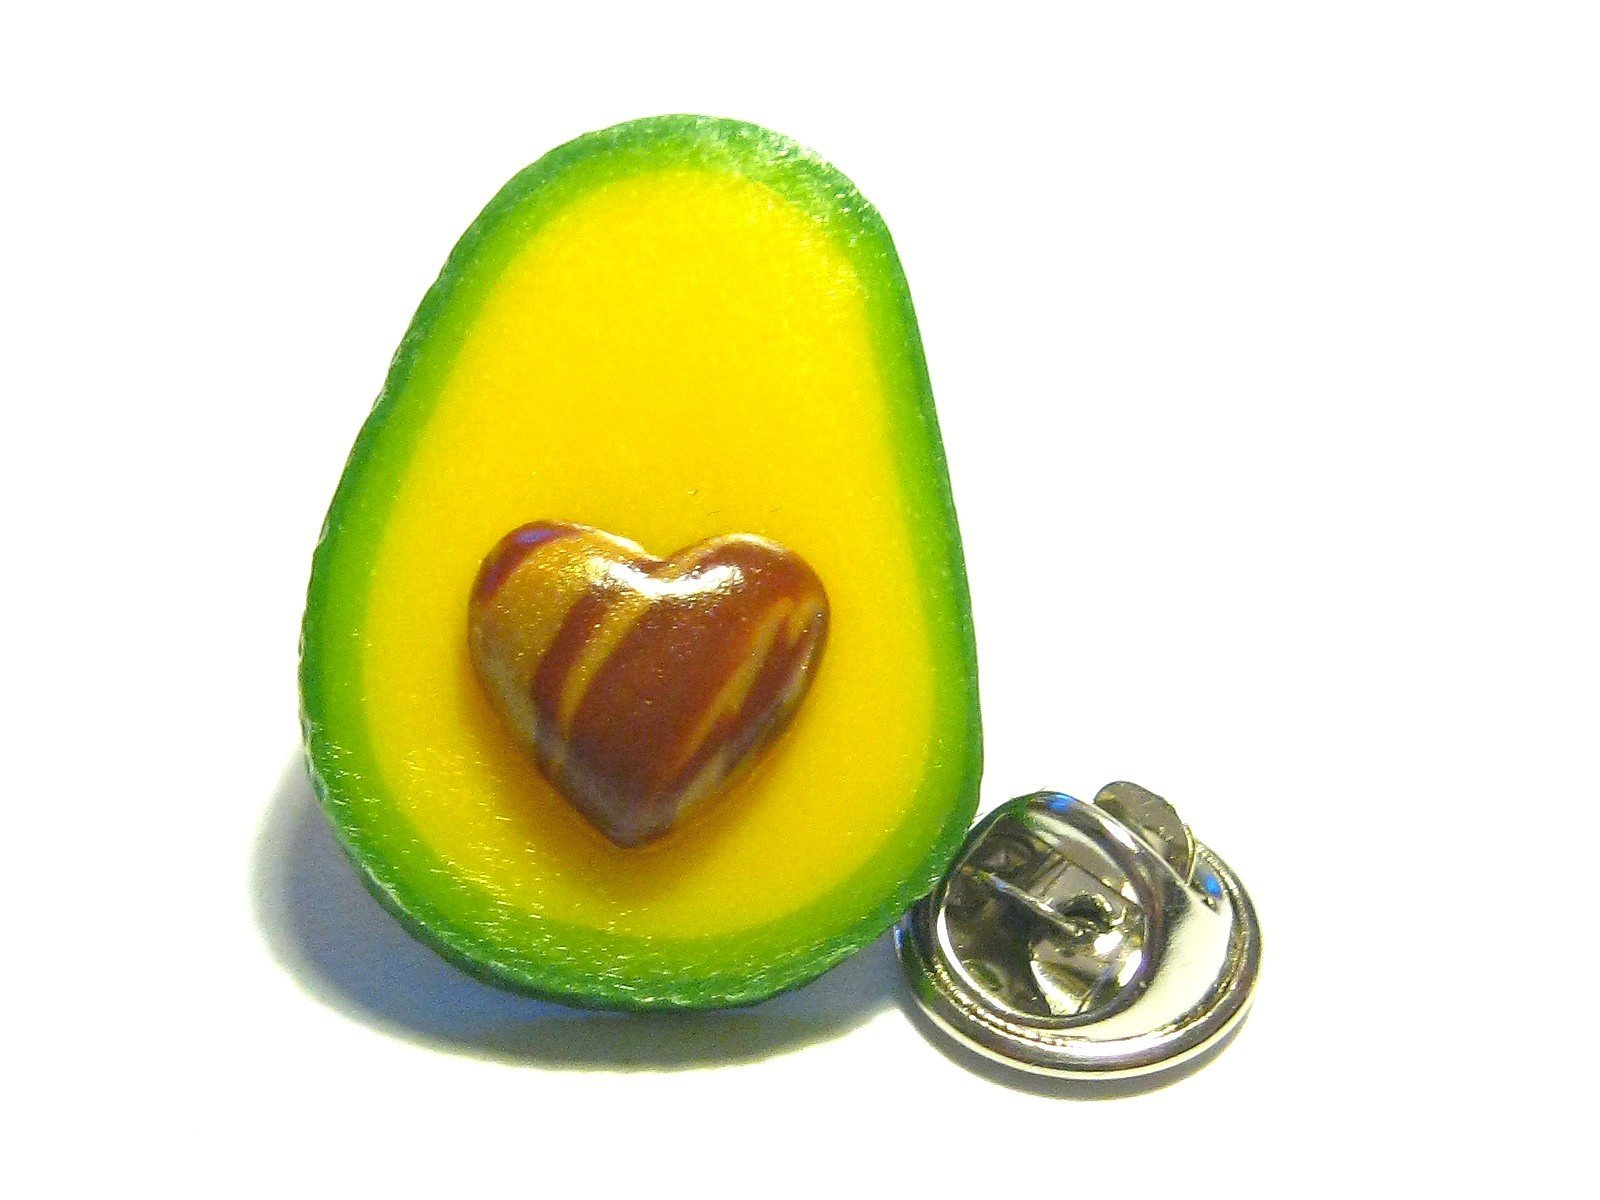 Avocado Love Pin - Tiny Food Jewelry